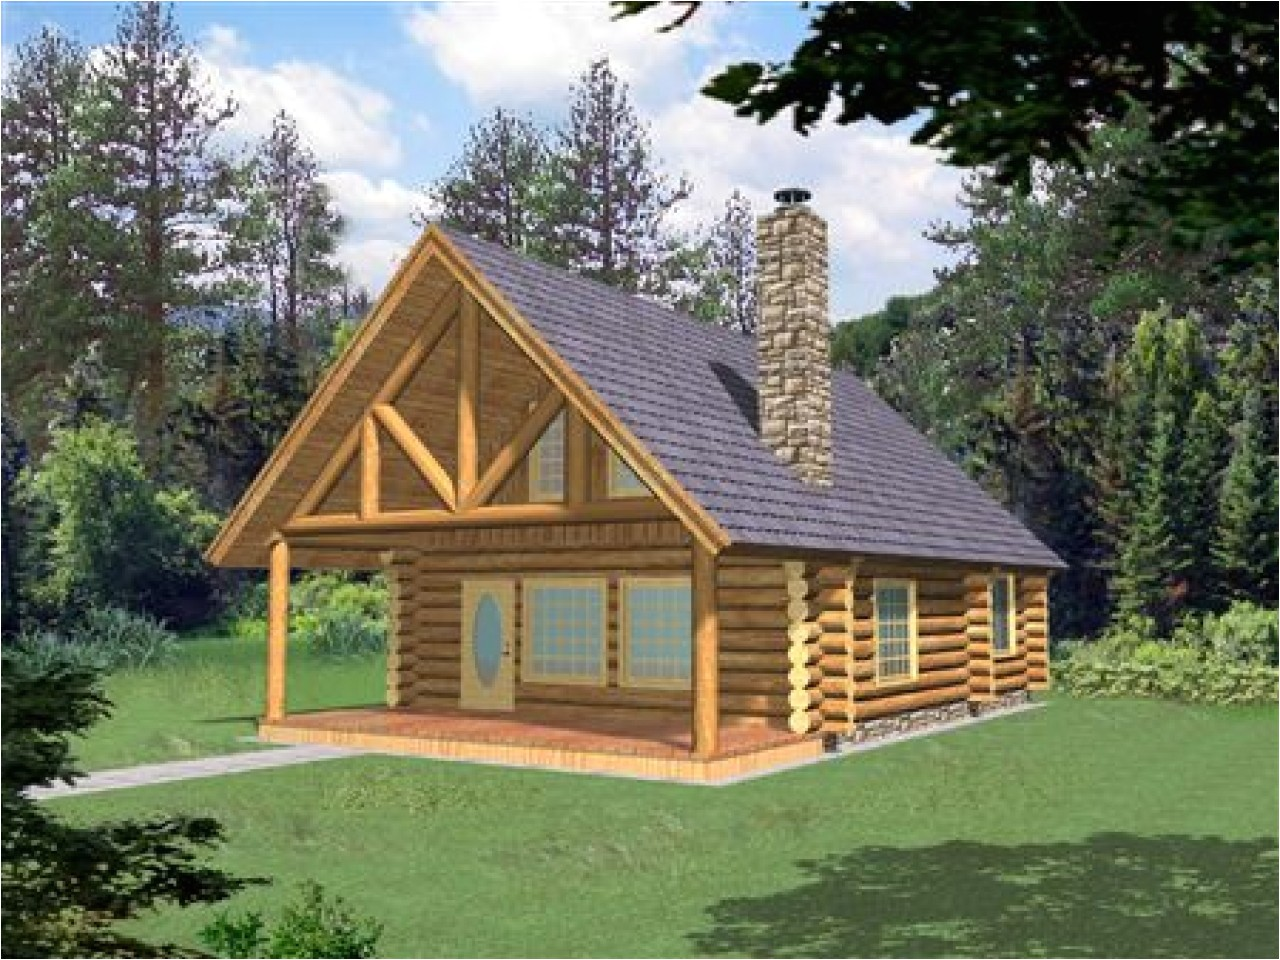 House Plans for Cabins and Small Houses Small Log Home with Loft Small Log Cabin Homes Plans